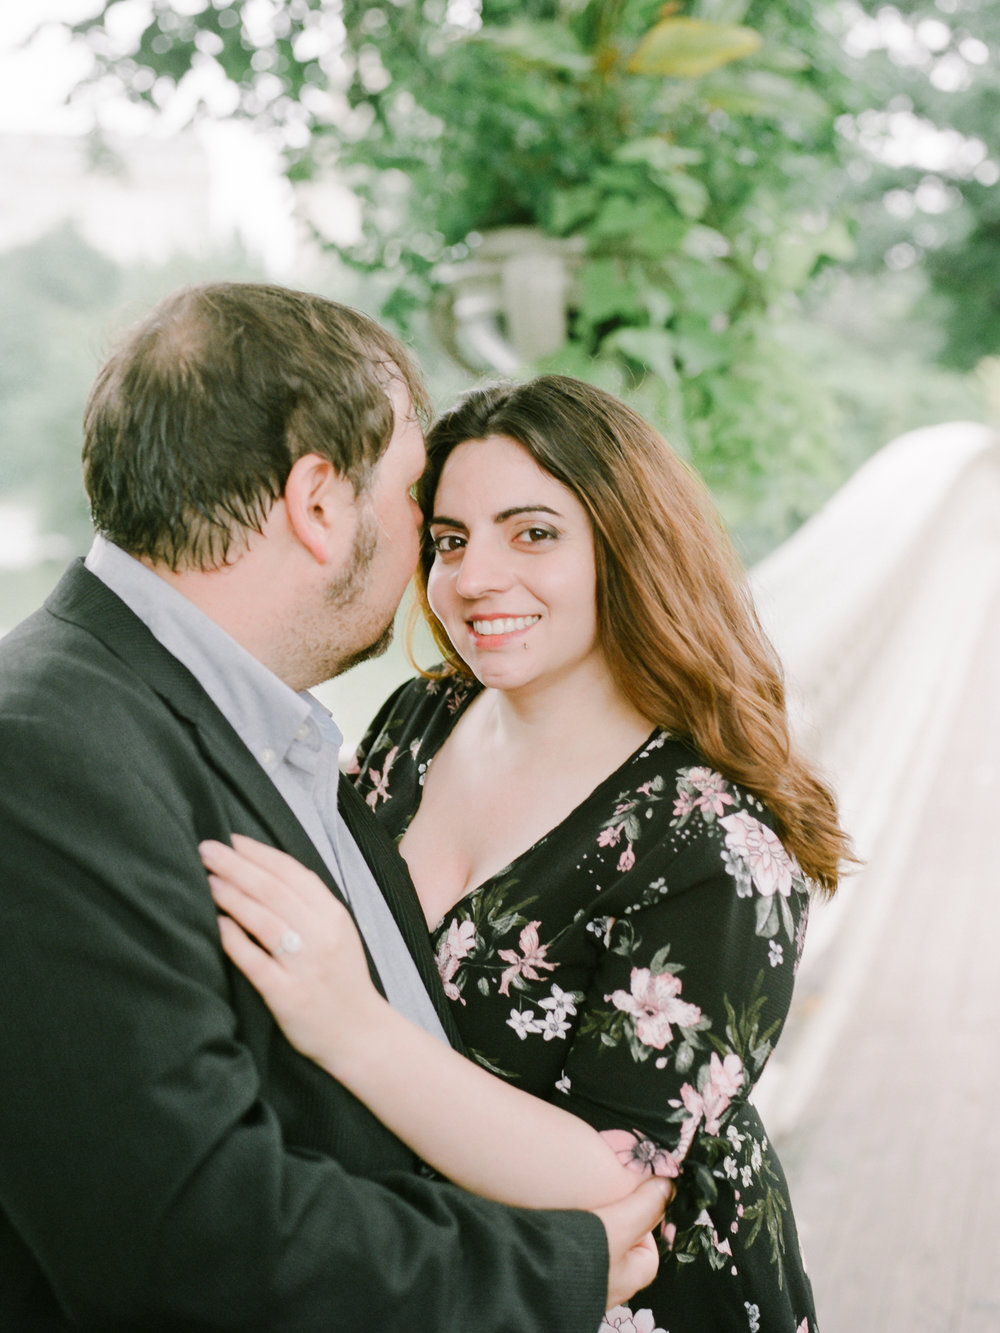 Central-Park-NYC-Engagement-Session-film-photography-21.jpg